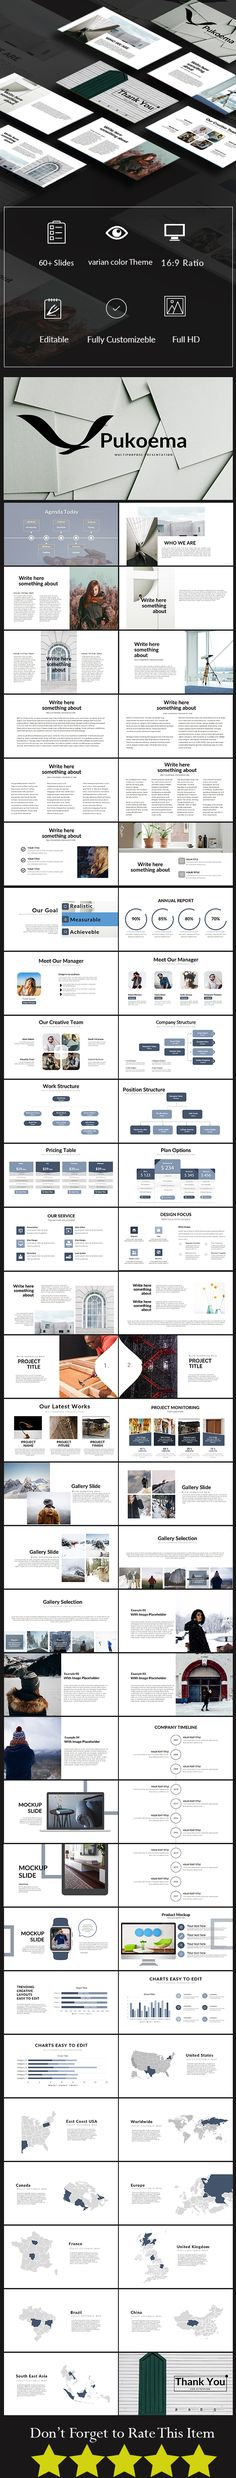 Pukoema Multipurpose PowerPoint Presentation Template